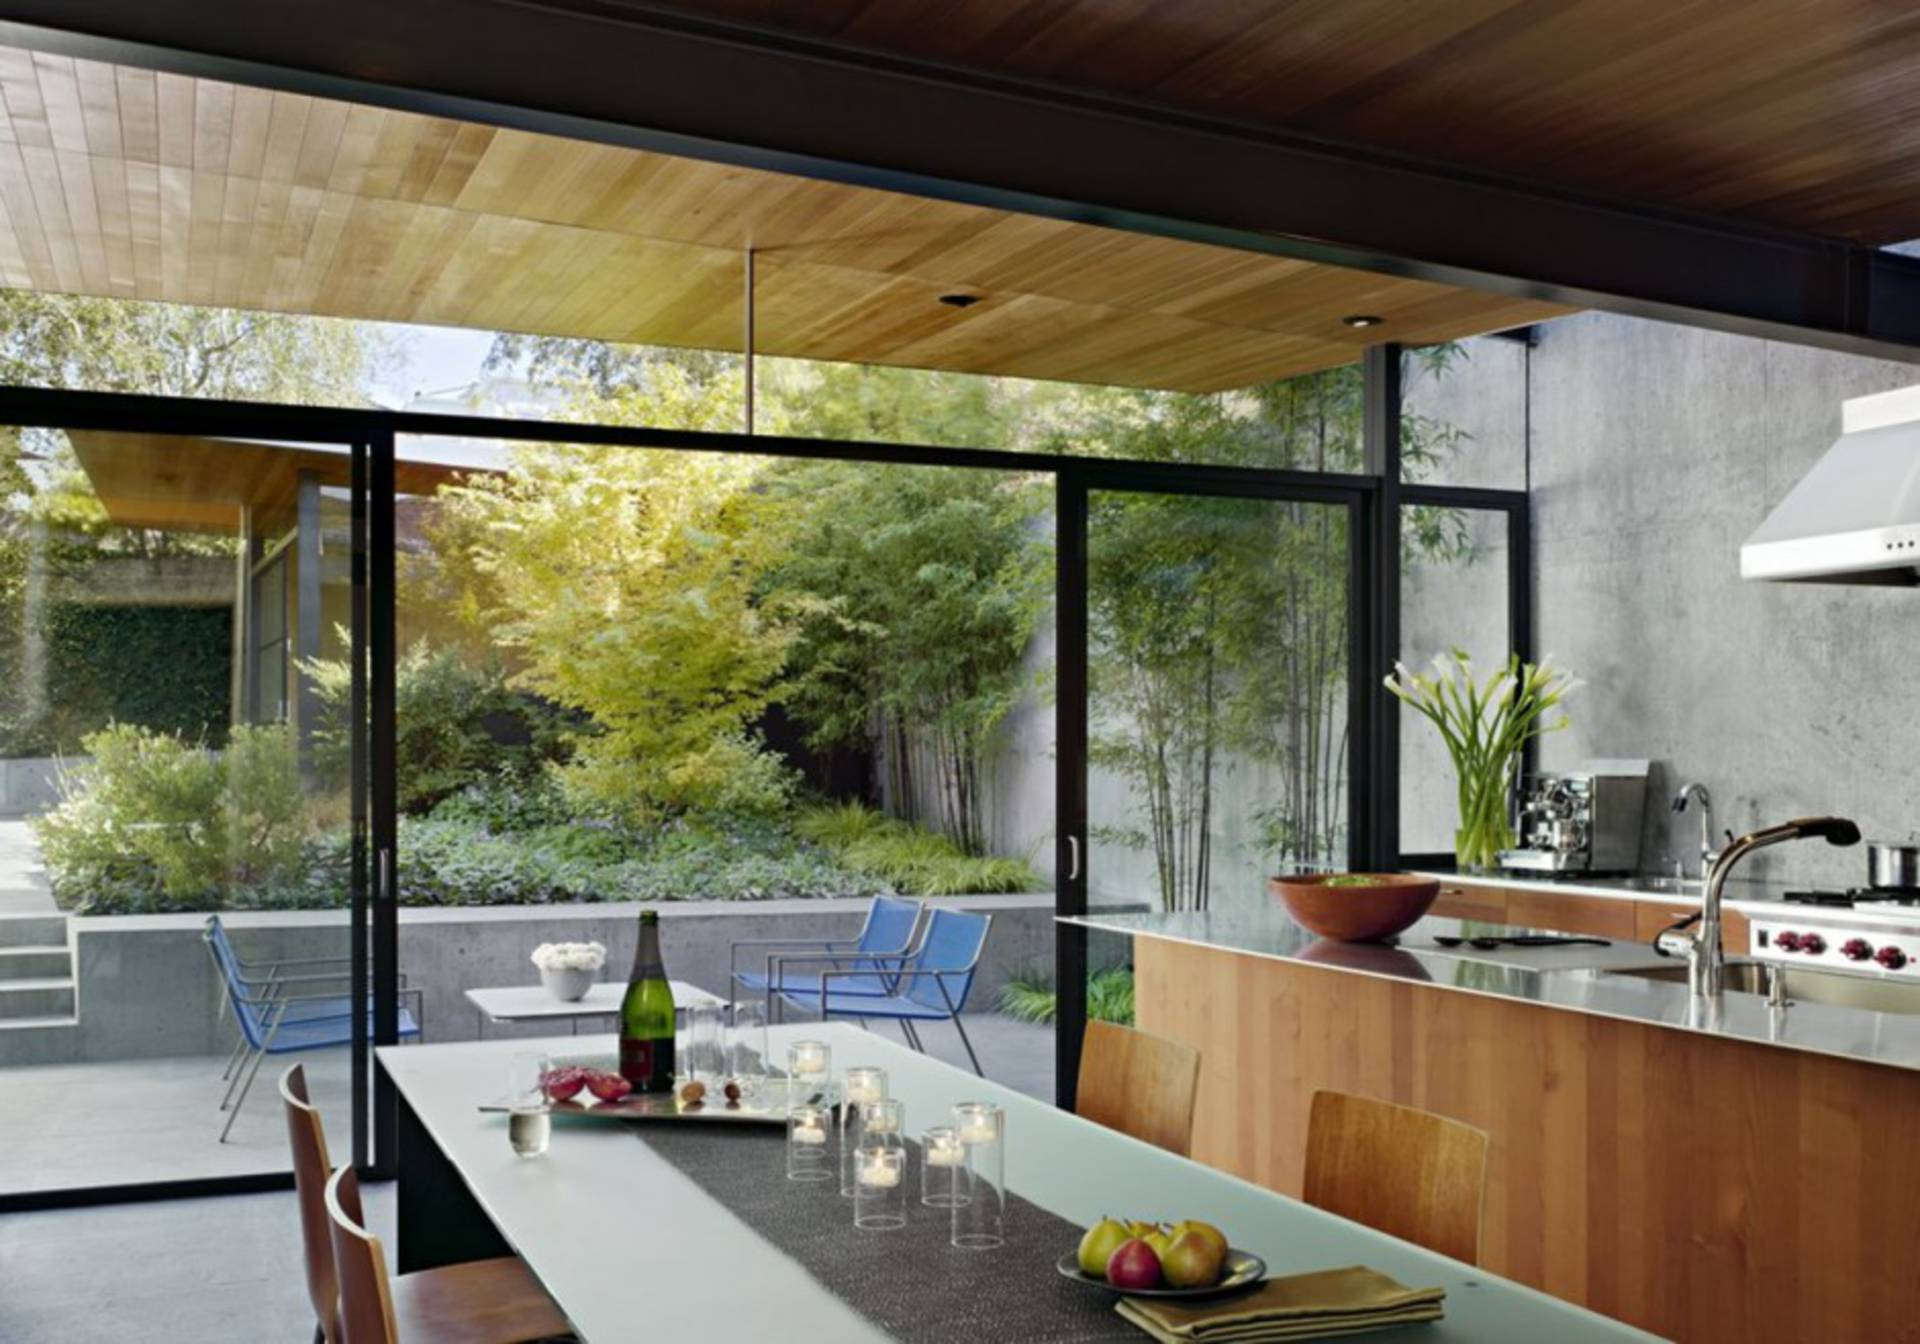 Diamond project house in san francisco california home for California home and design